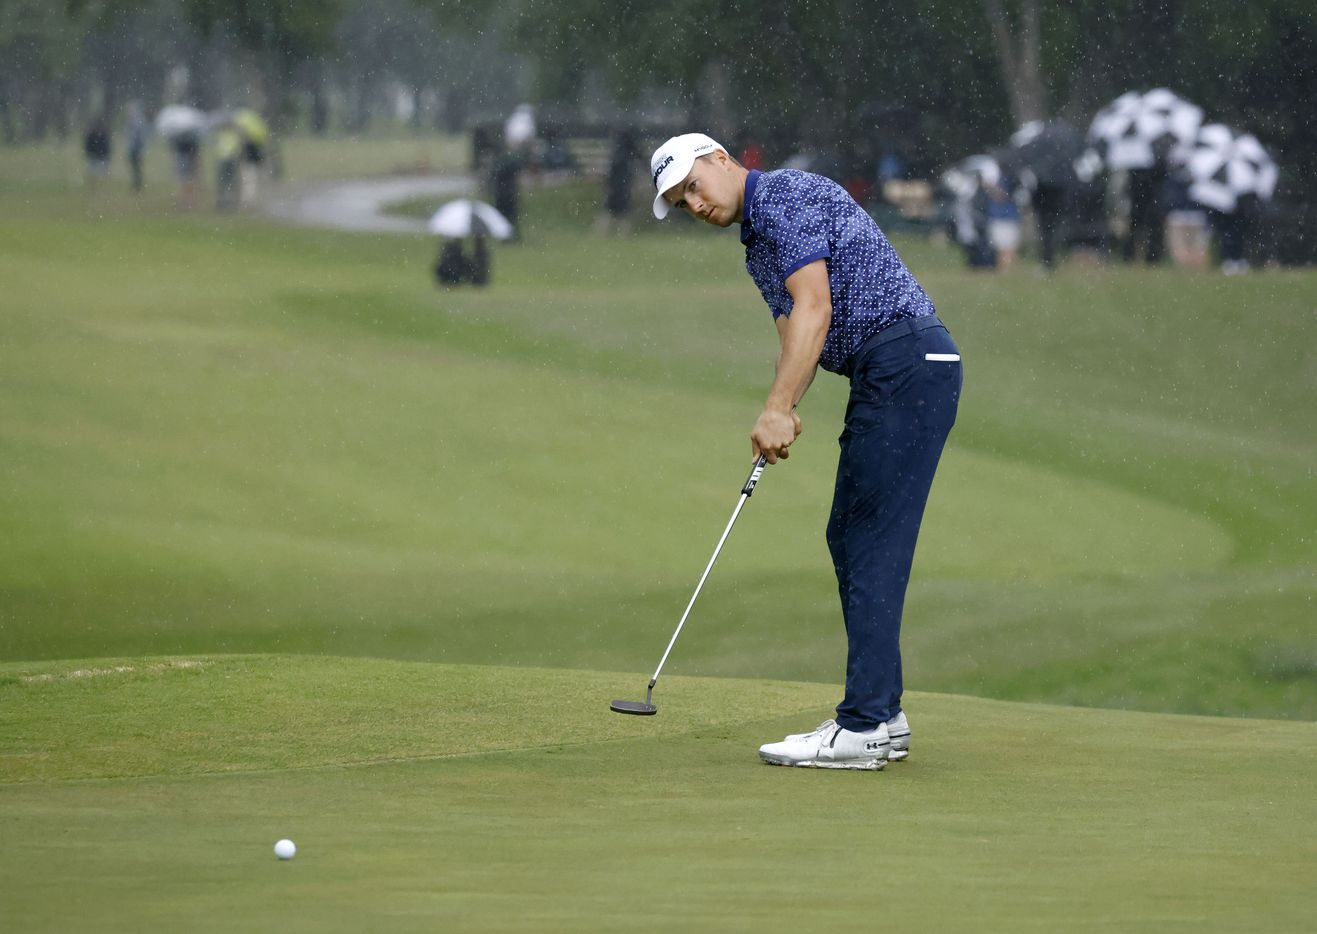 Jordan Spieth watches his putt as it rains on the 9th hole during round 4 of the AT&T Byron Nelson  at TPC Craig Ranch on Saturday, May 16, 2021 in McKinney, Texas. (Vernon Bryant/The Dallas Morning News)